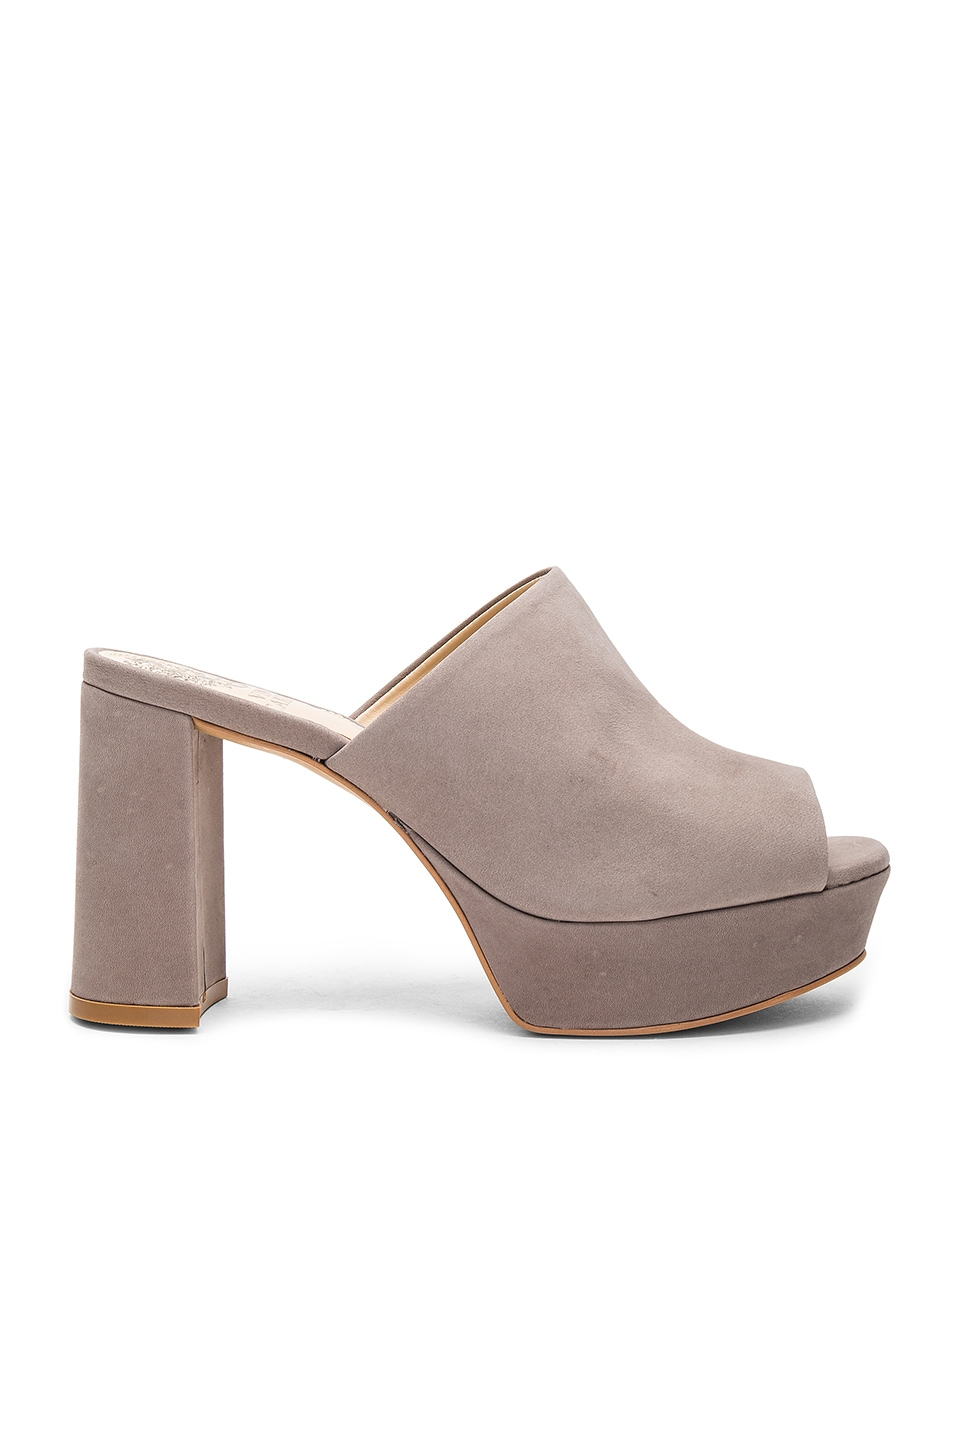 Vince Camuto Basilia Heel in Ancient Stone Oil Nubuck